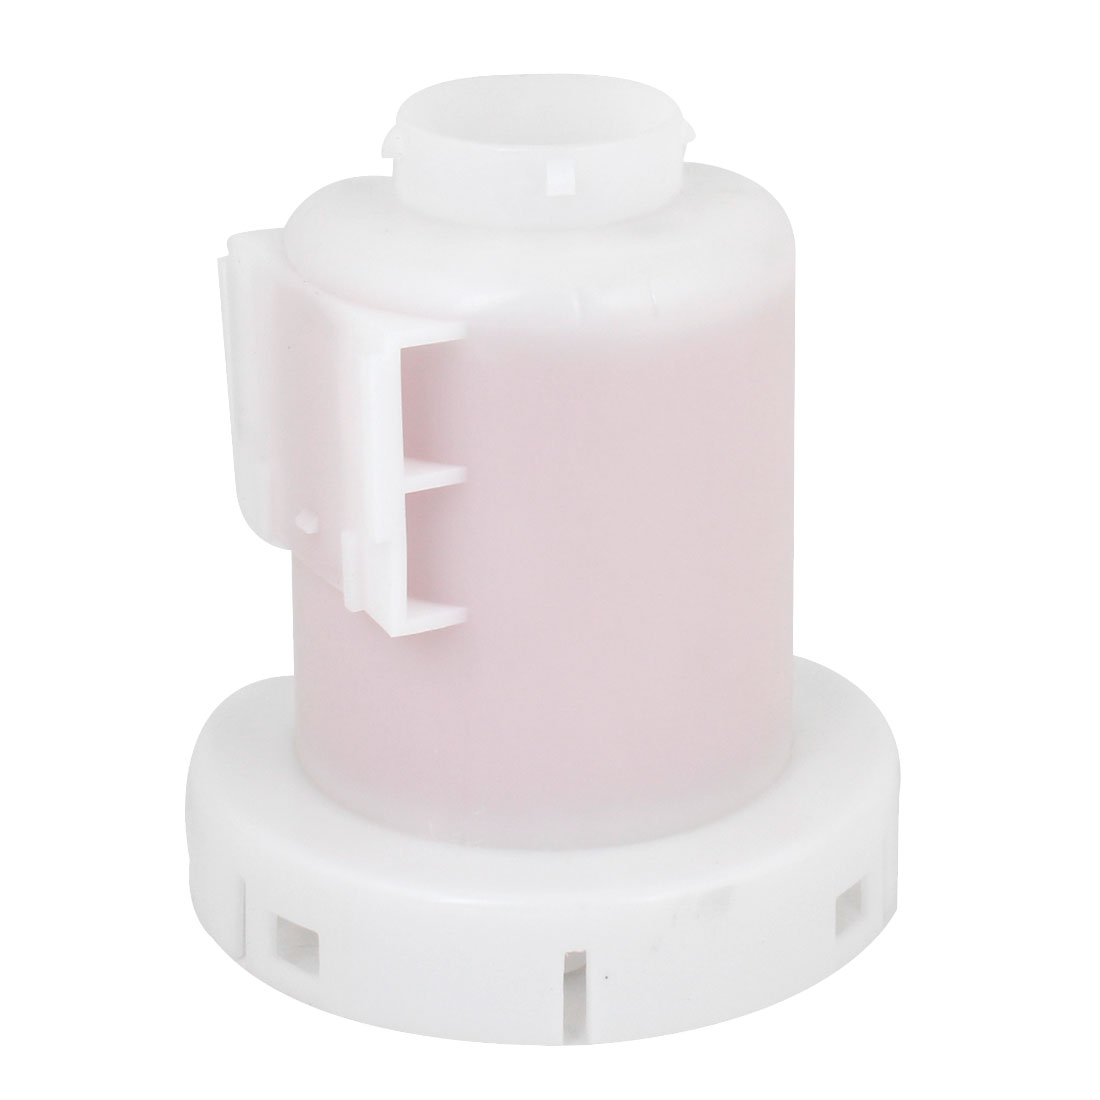 31112-1G500 Auto Car Plastic Casing Oil Fuel Filter Accessory